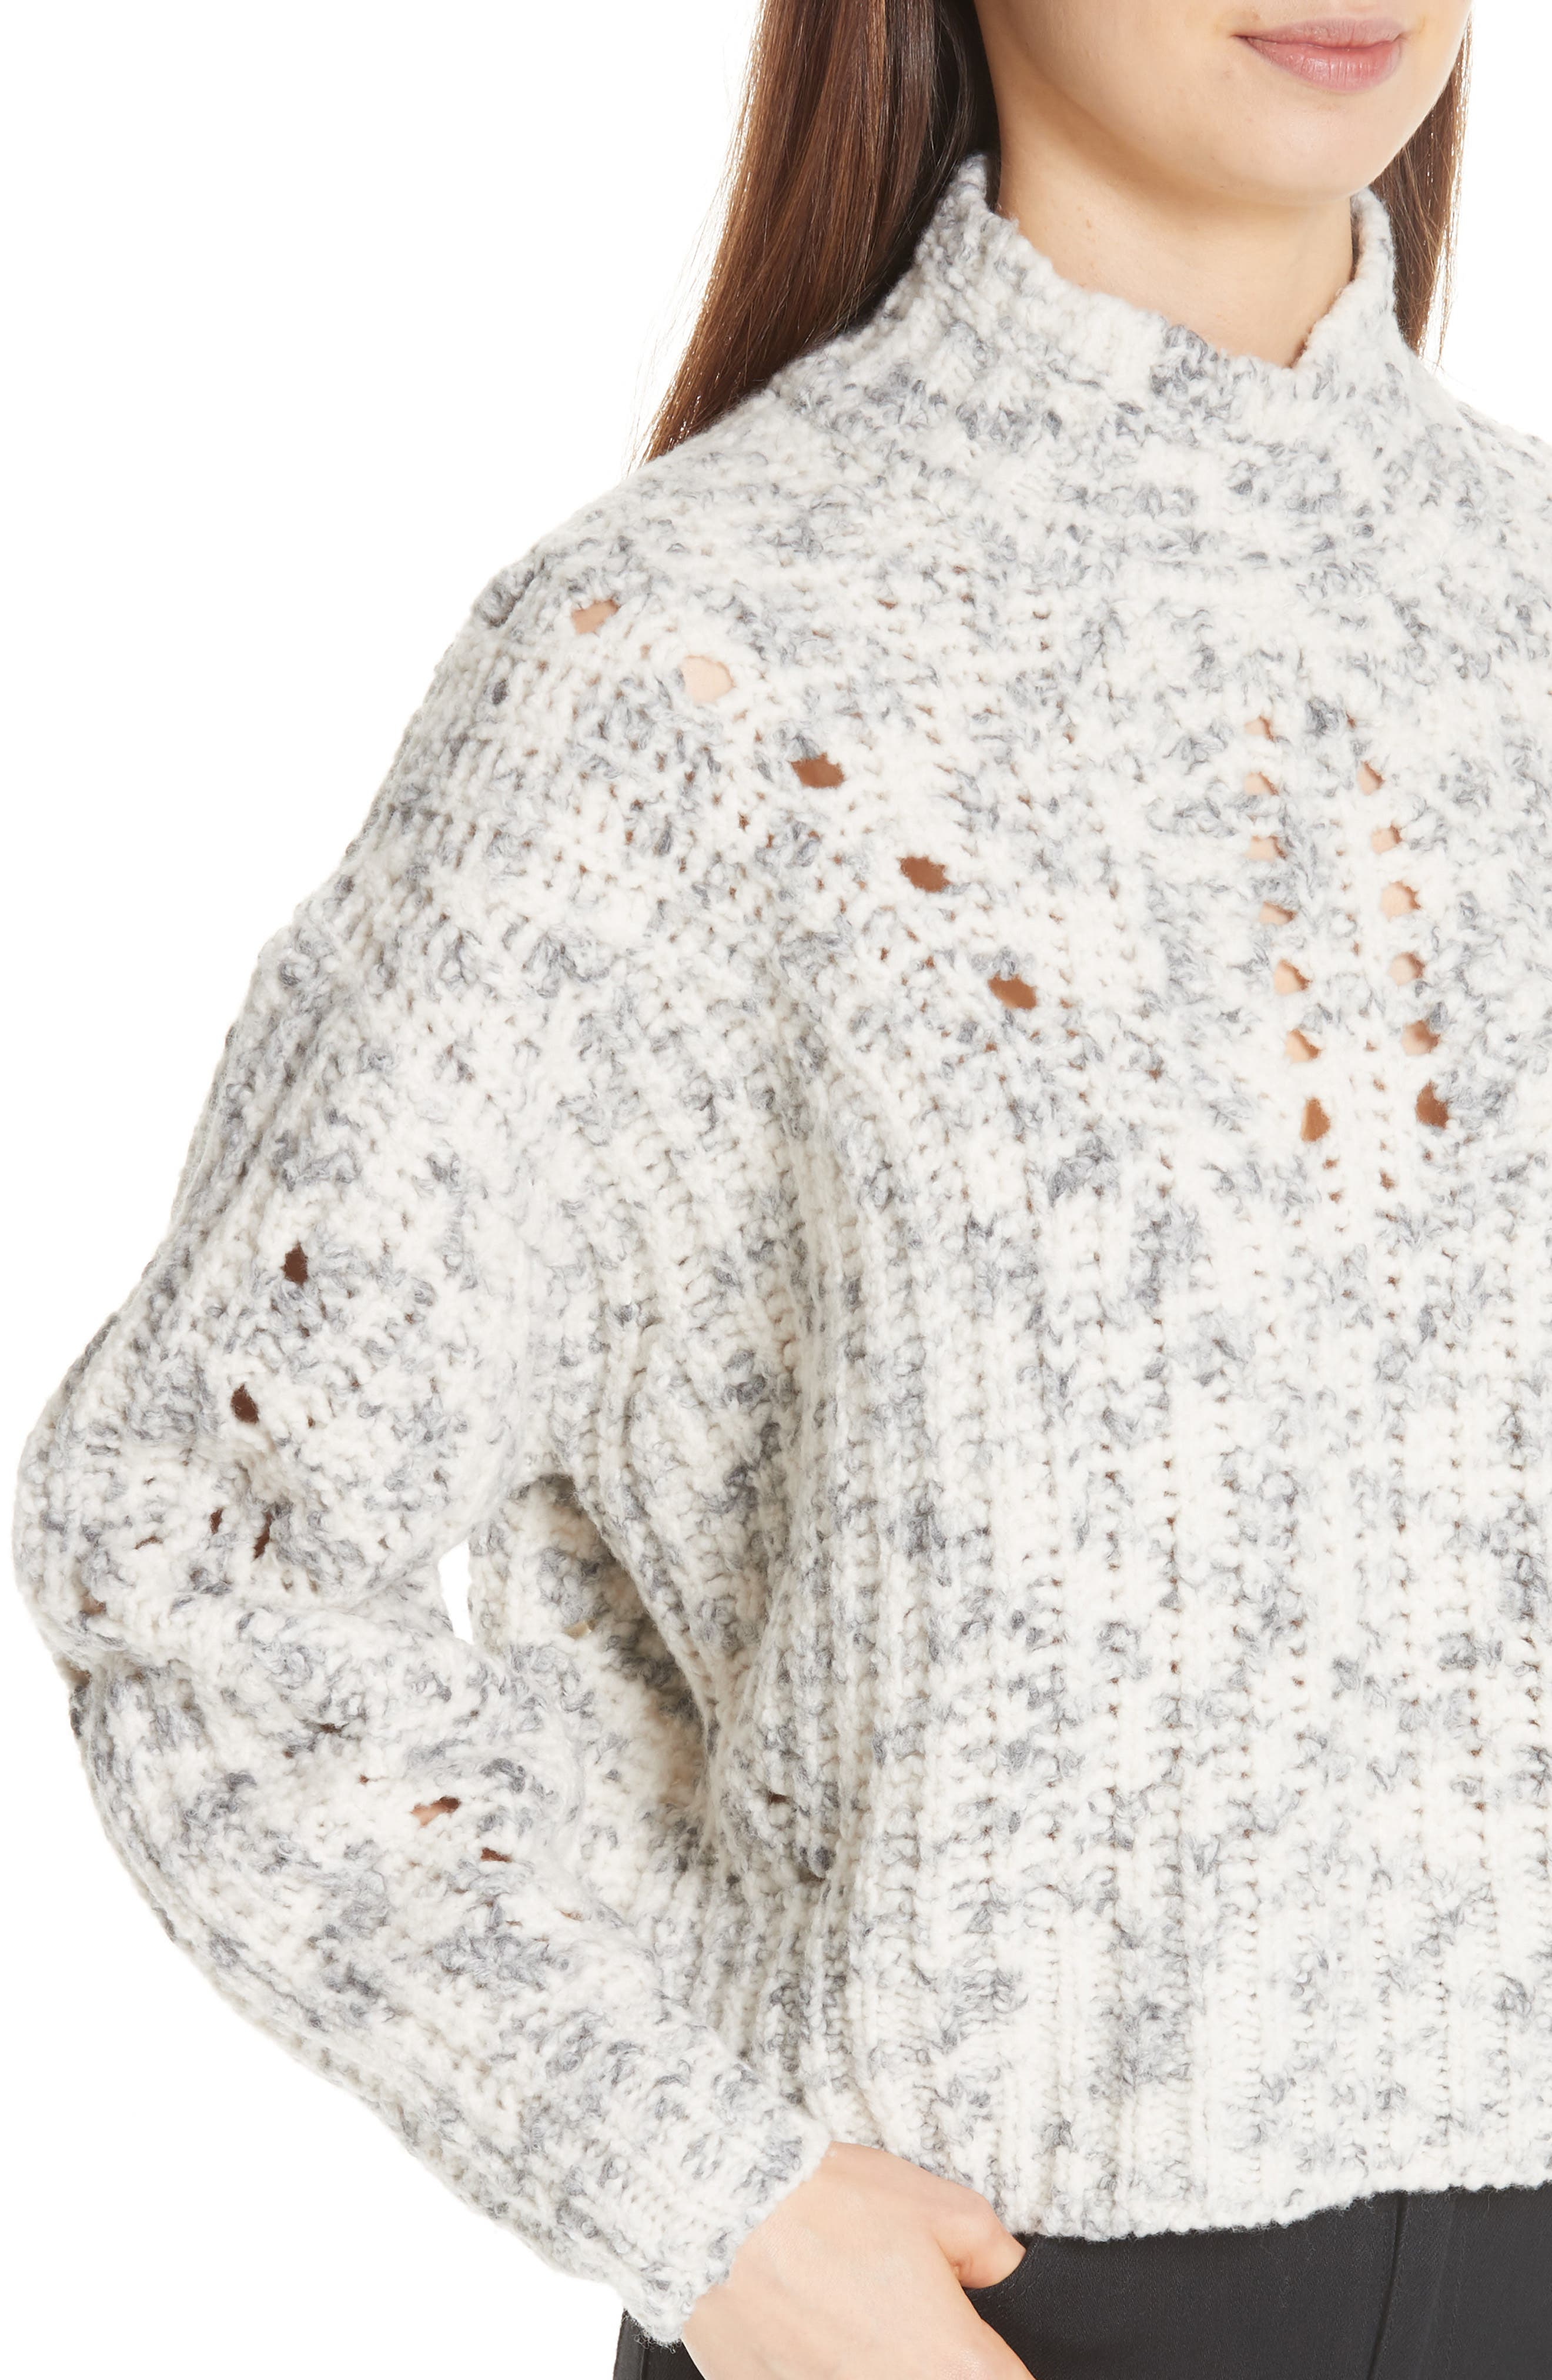 Jilly Wool Sweater,                             Alternate thumbnail 4, color,                             900